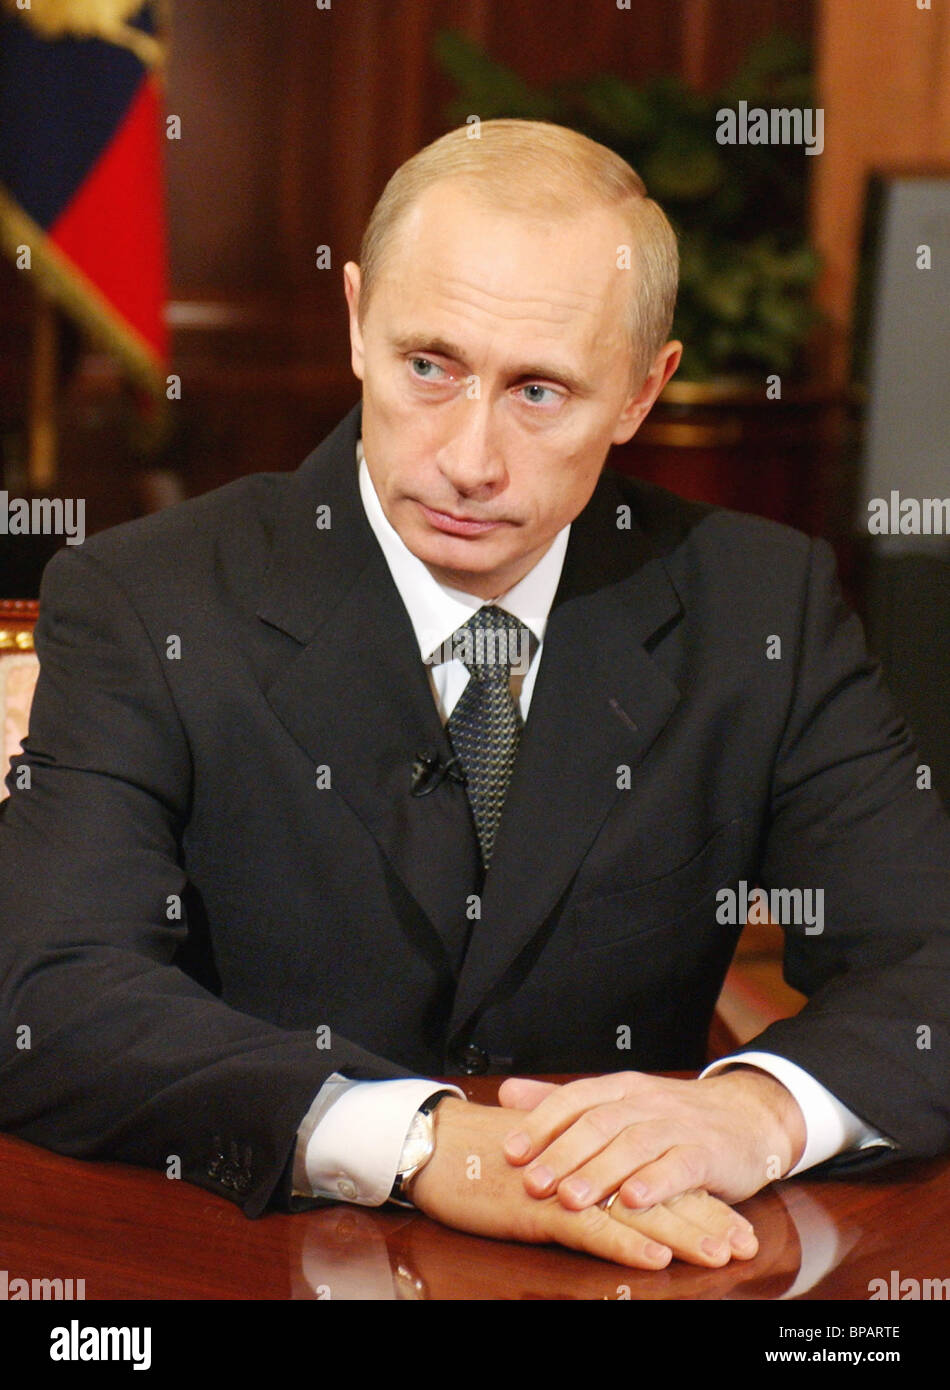 President Vladimir Putin addresses the population of the country - Stock Image